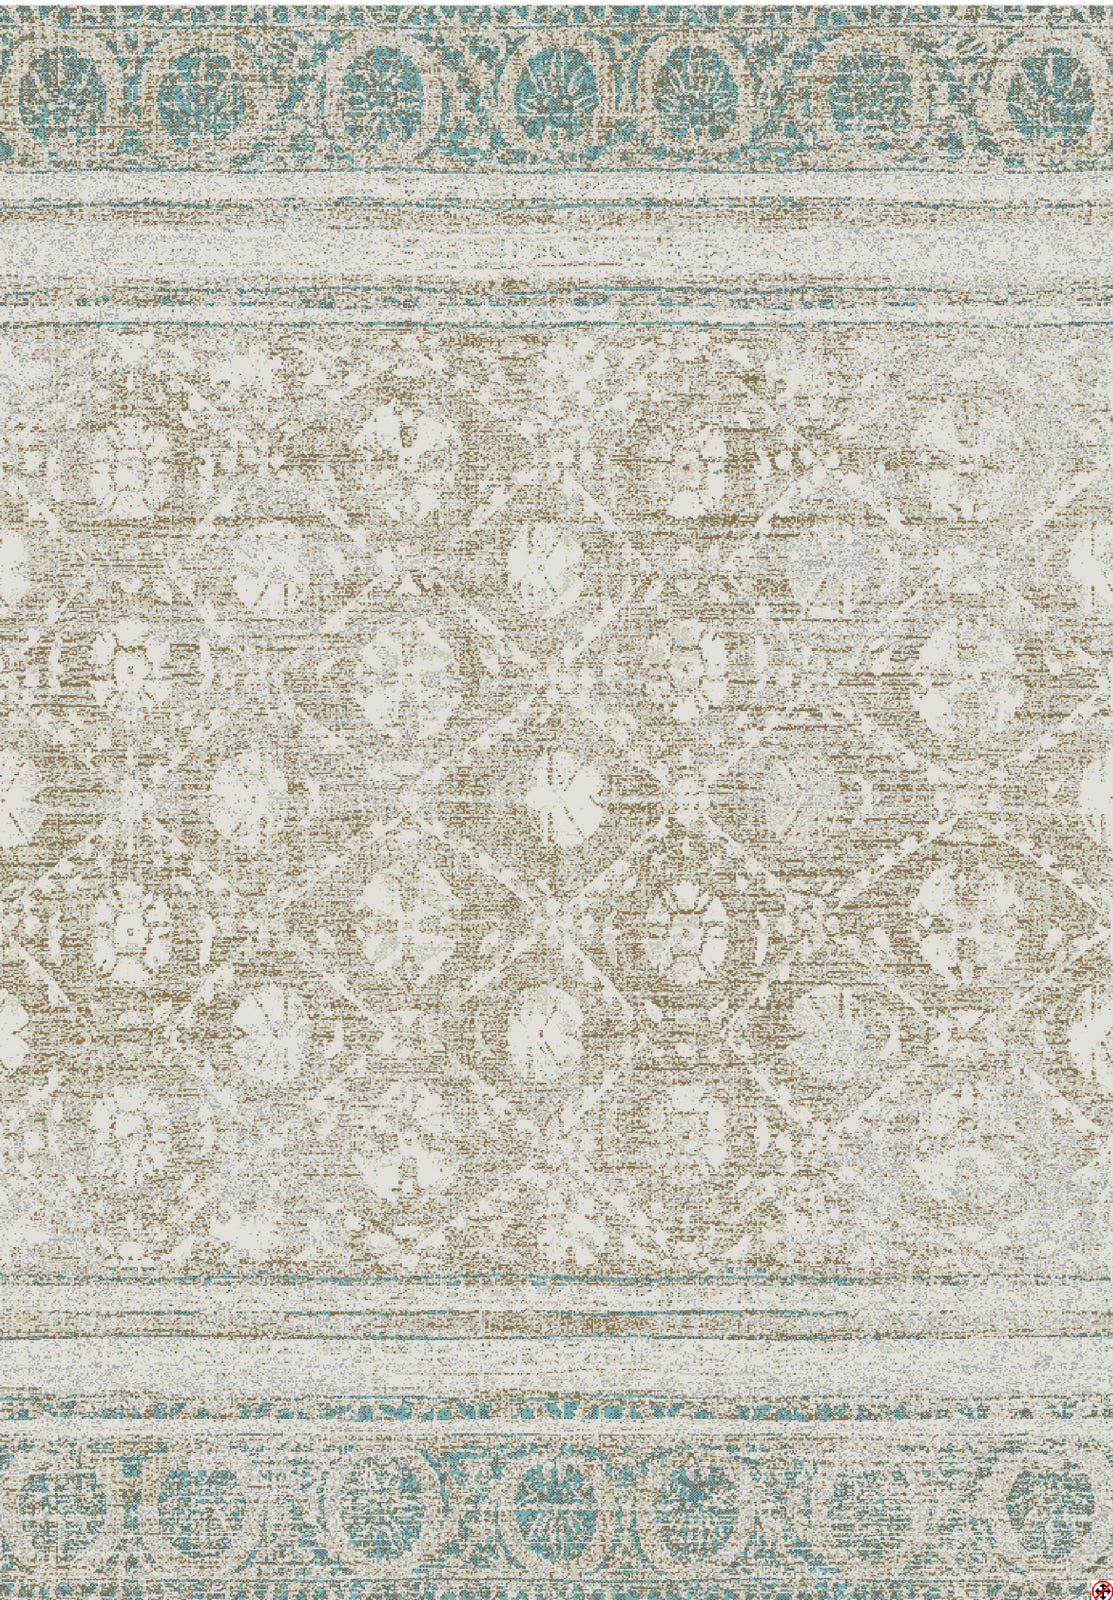 Karastan Touchstone Martinique Hazelnut Area Rug by Patina Vie main image